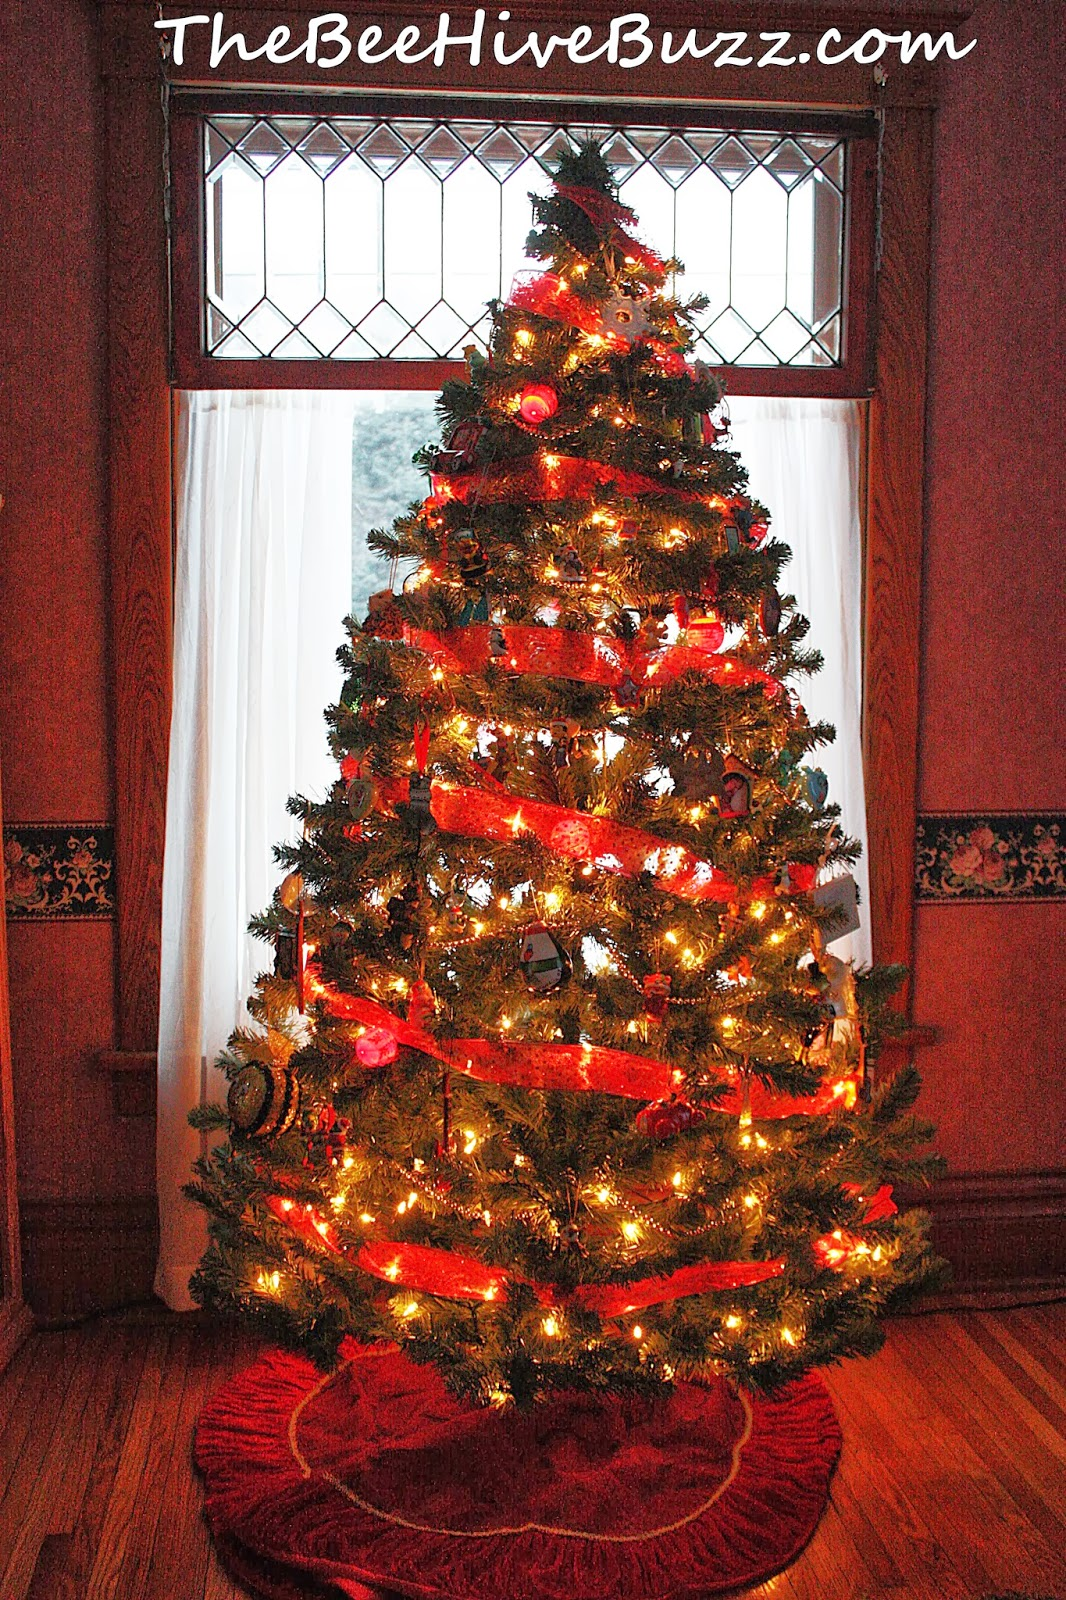 Why do we have christmas decorations on a tree - The Second Christmas Tree Which In Our Entry Way Is Decorated As Christmas Present For This Tree We Decided To Do Something More Sleek And Modern With